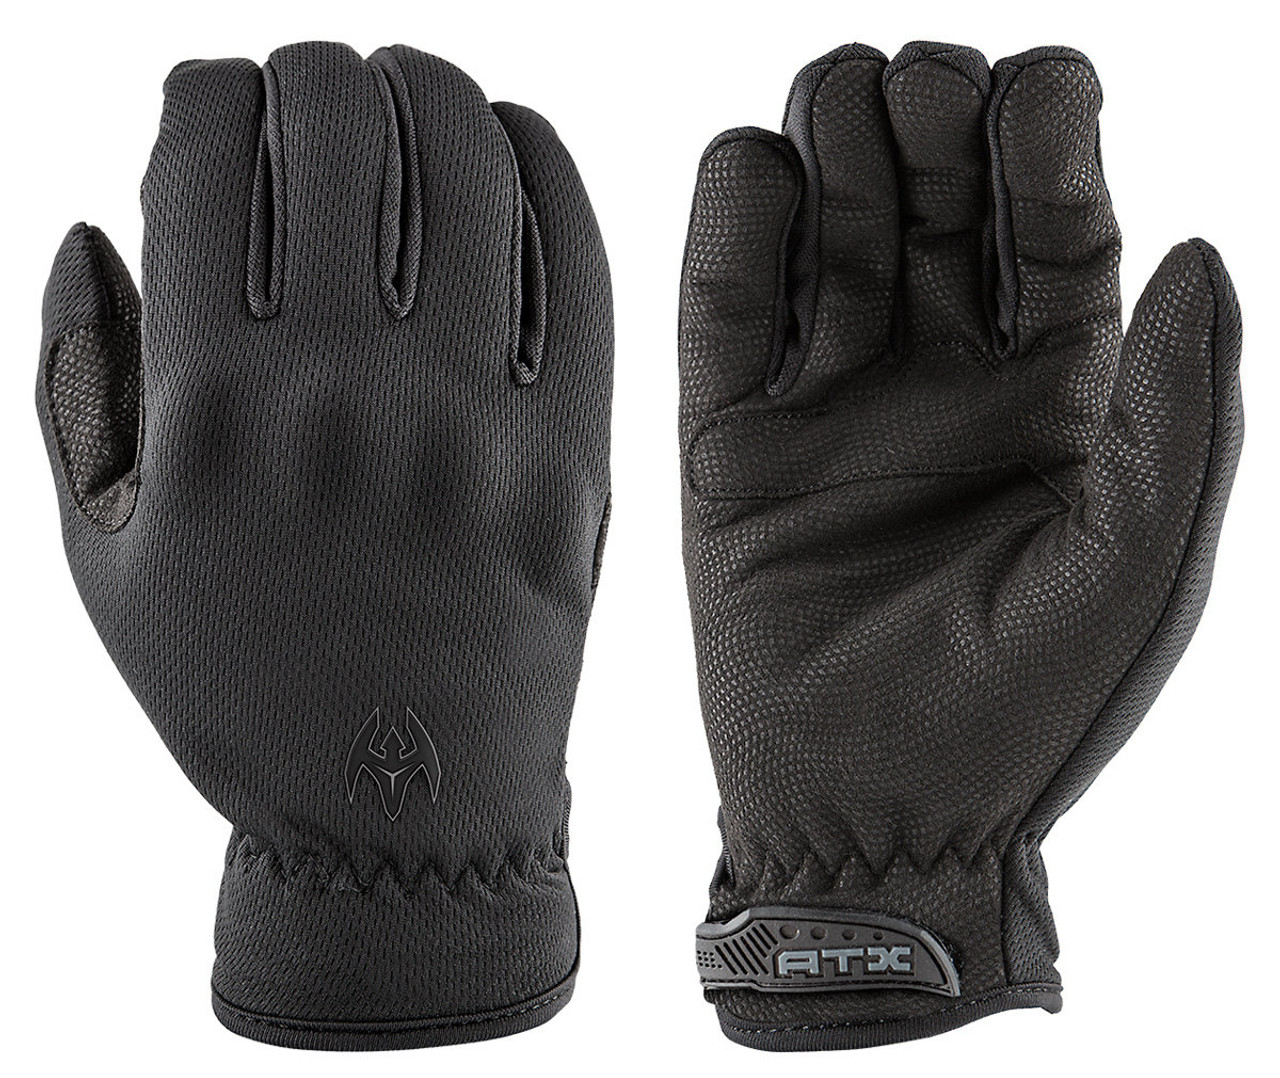 Men/'s Leather Classic Kevlar Lined Gloves Security Cut Resistance